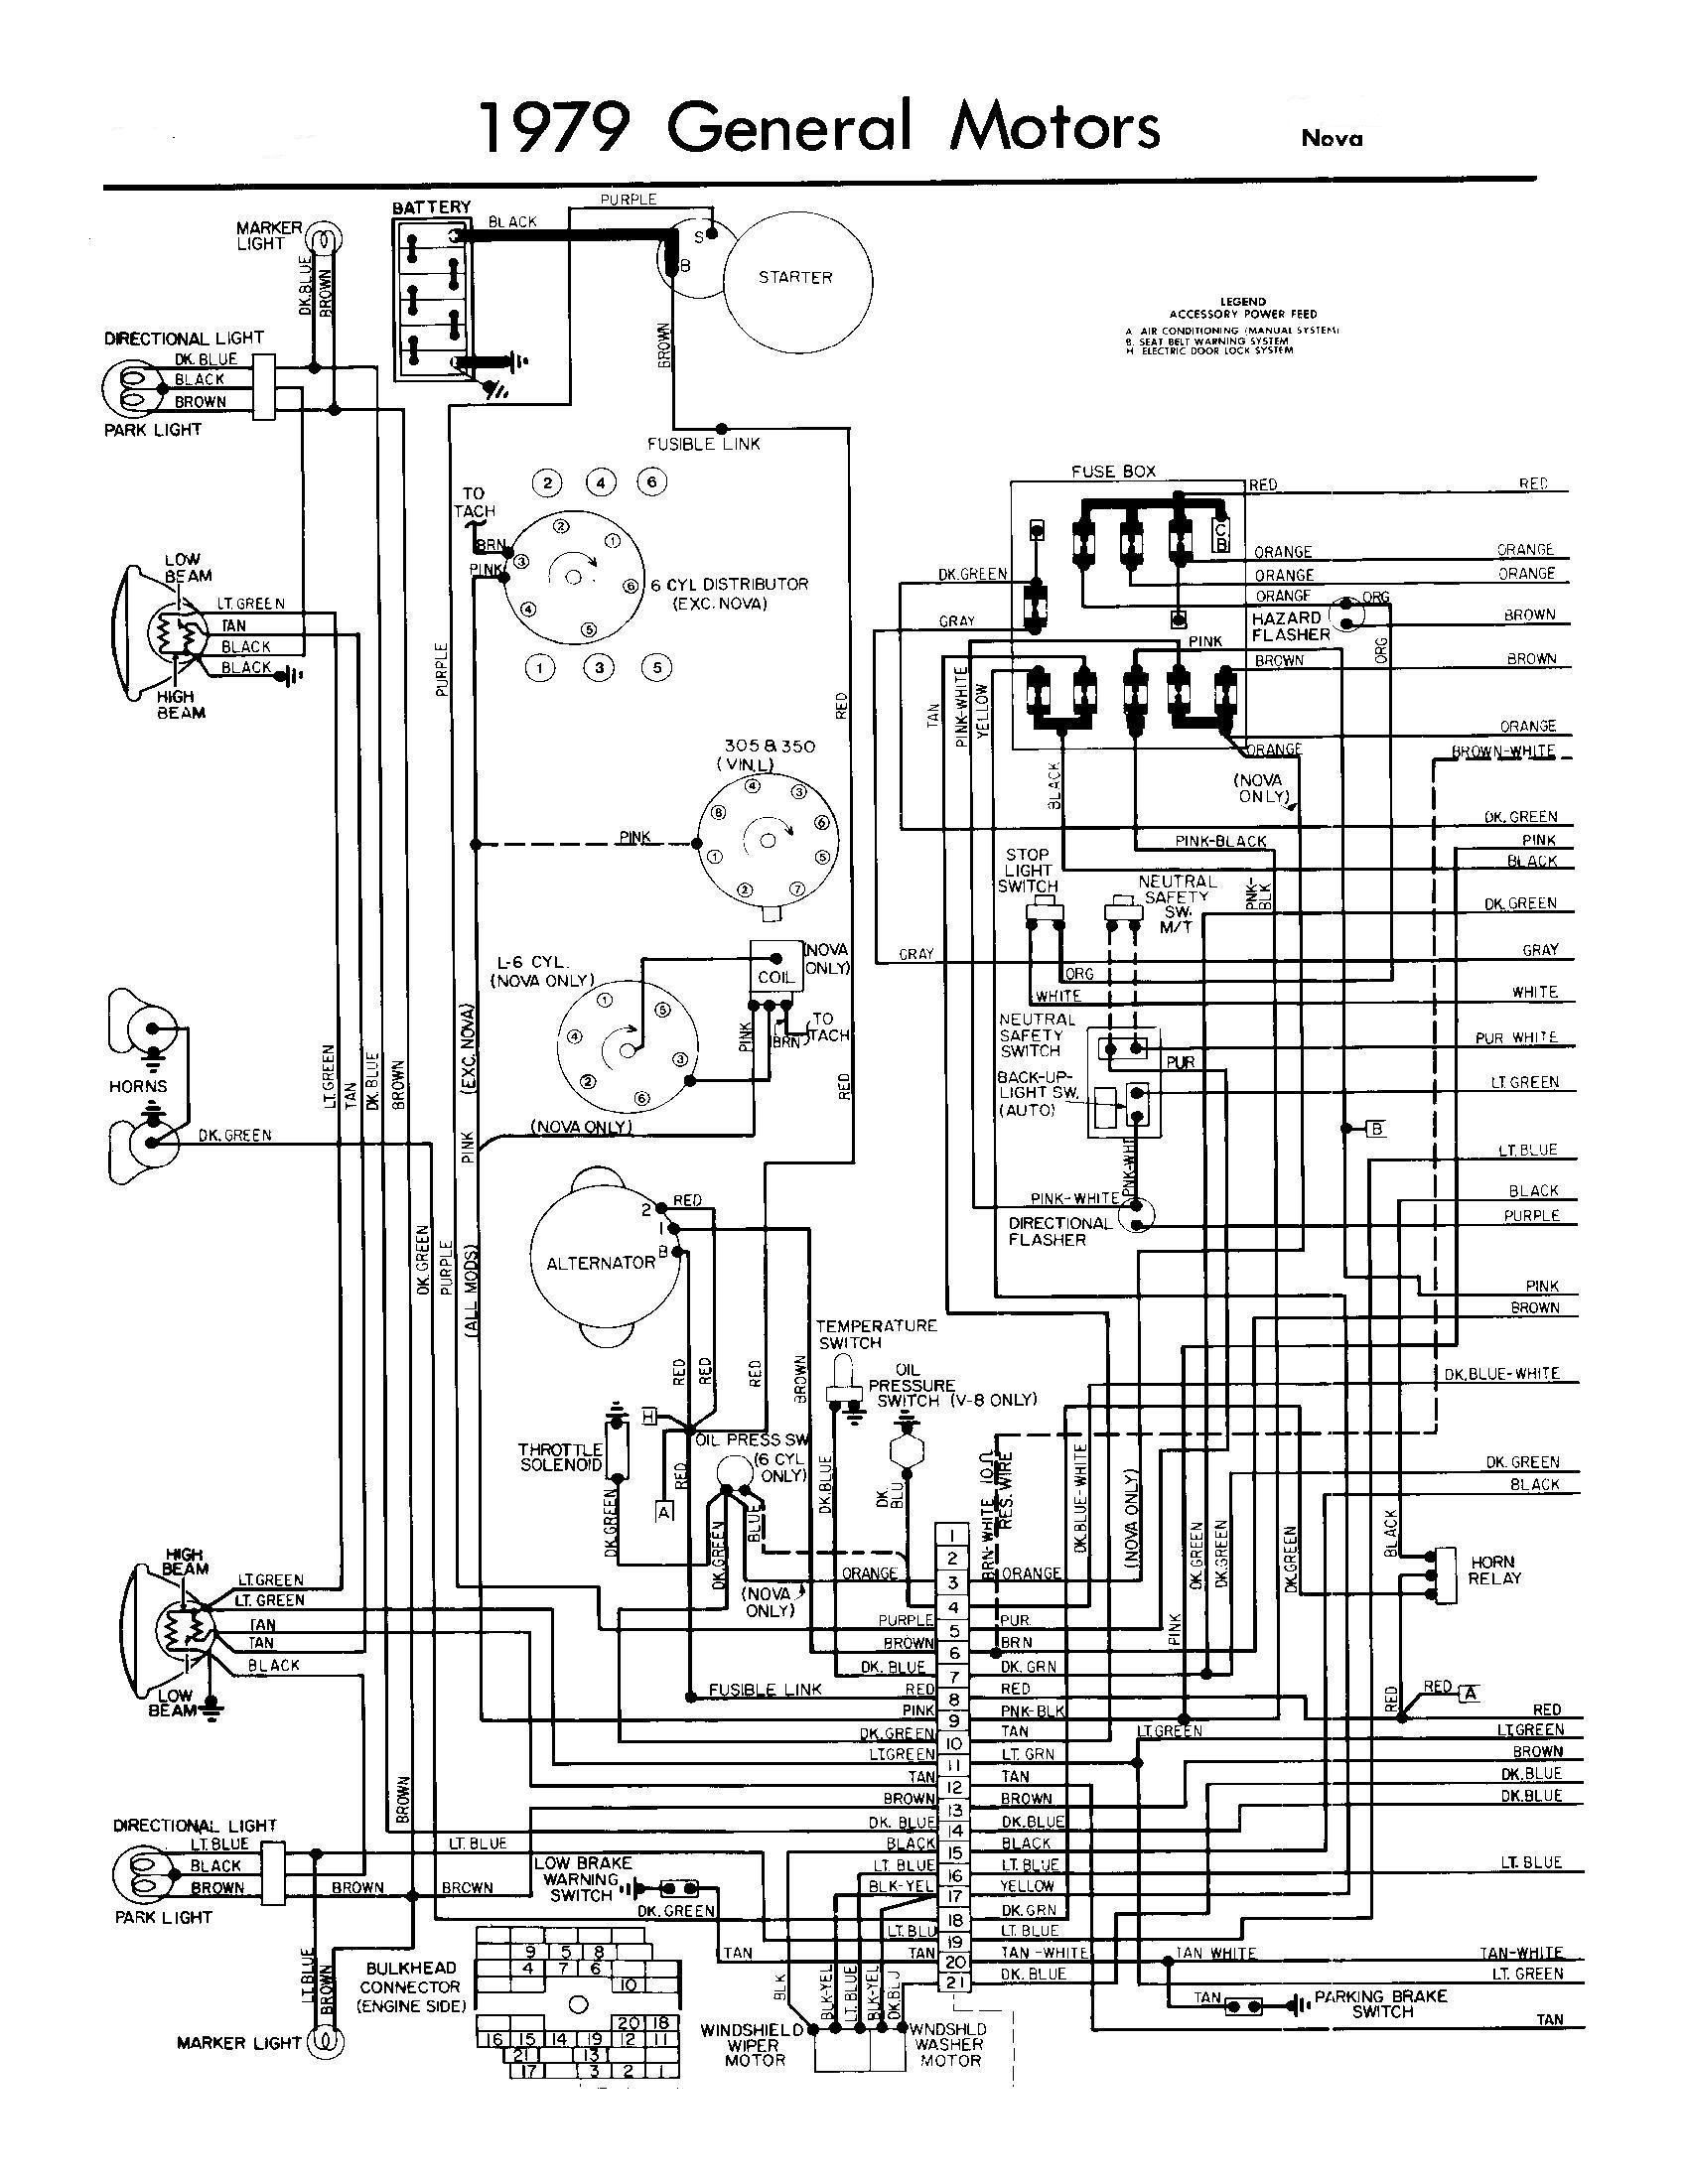 1972 chevrolet c10 wiring diagram instrument